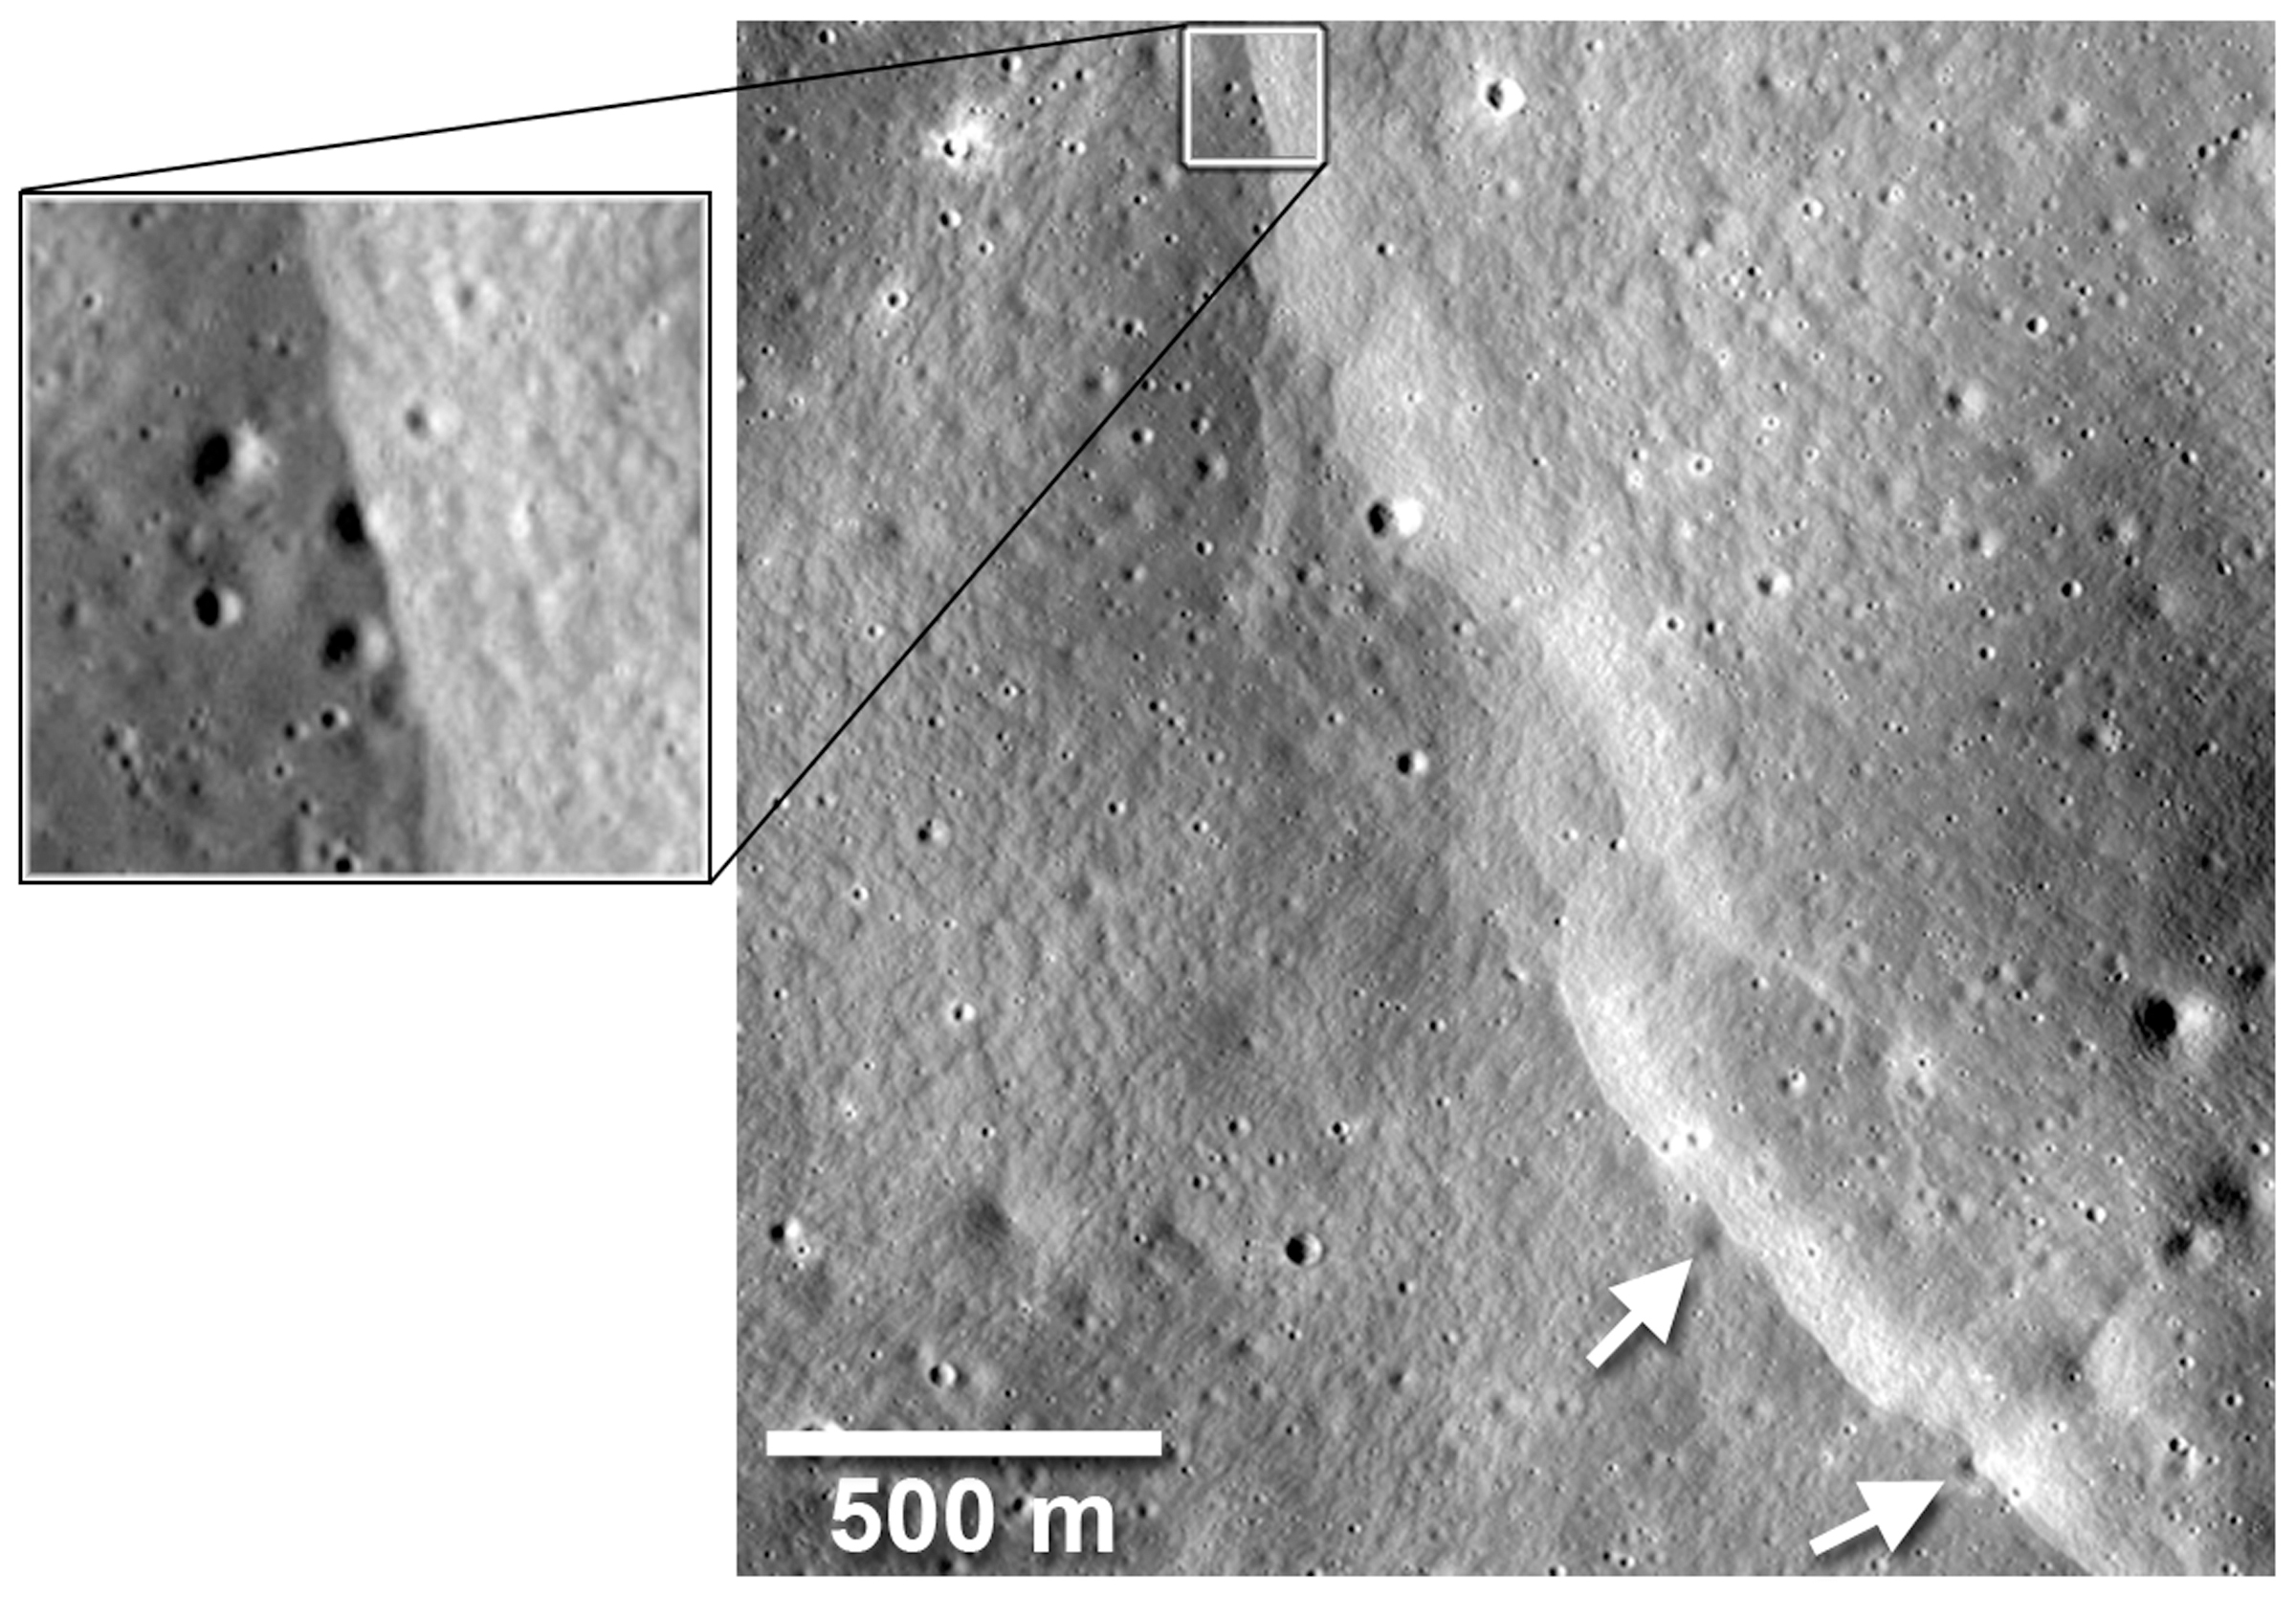 Image illustrating Crosscut Craters with inset